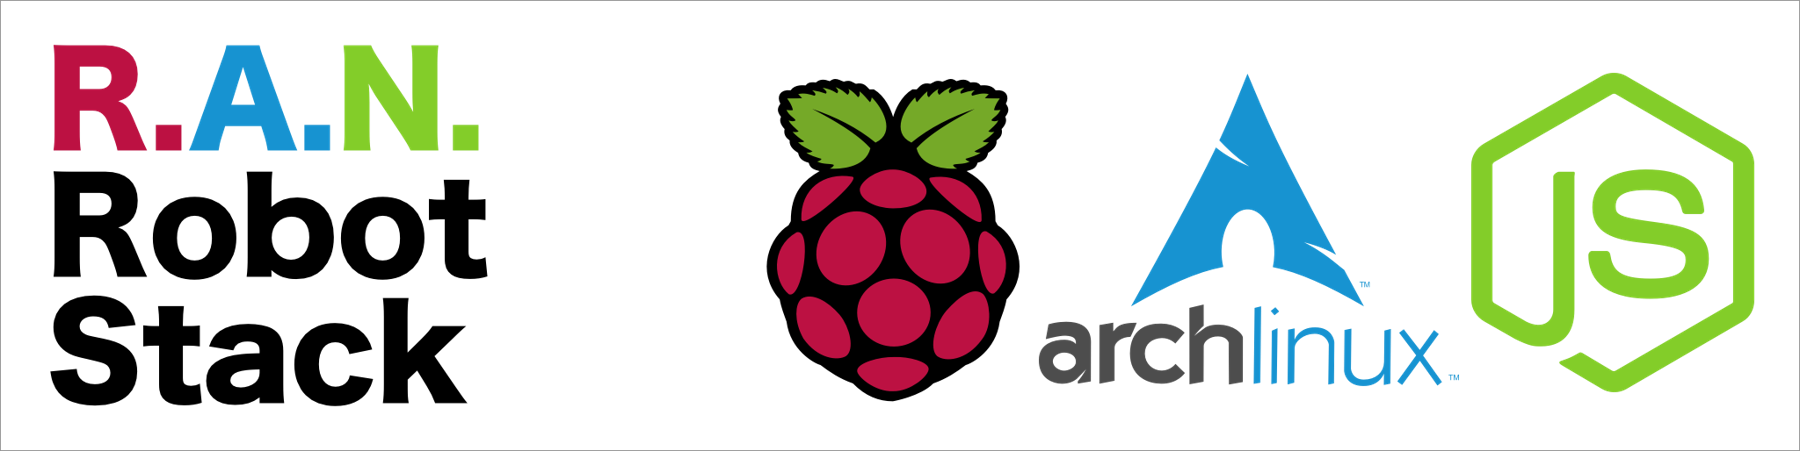 Setup i2c on Raspberry Pi Zero W using Arch Linux